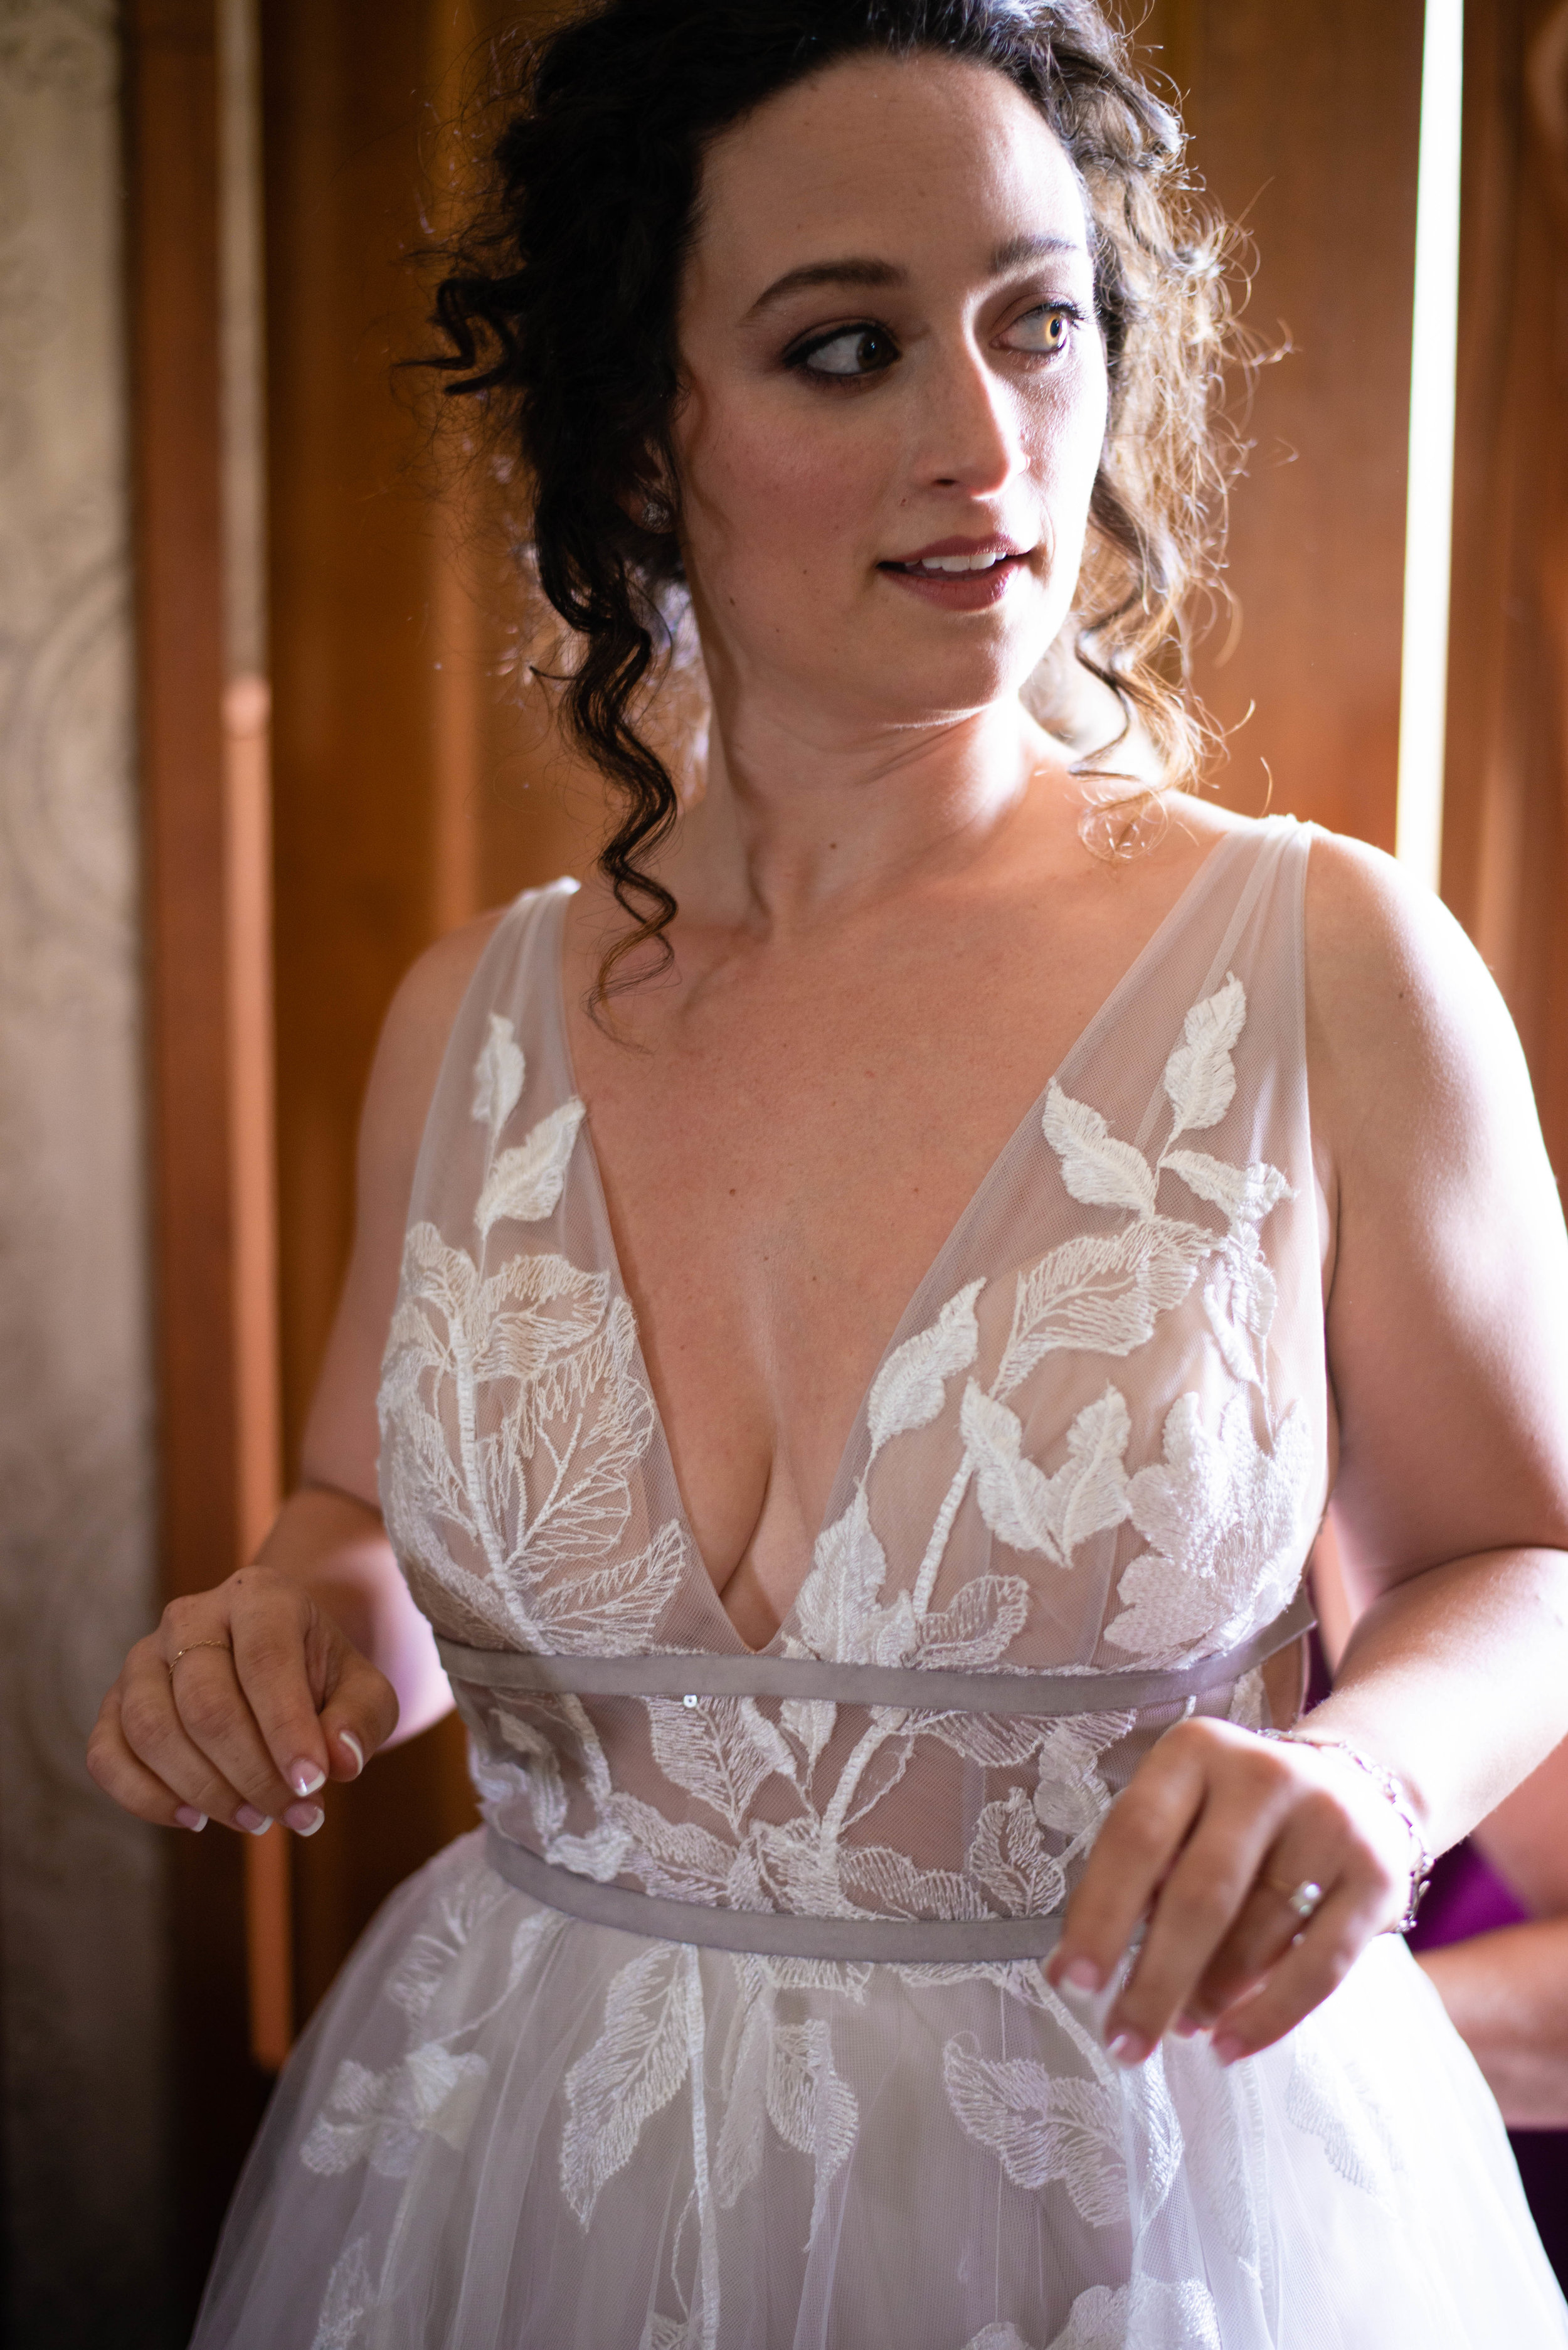 LGEmerick Photography, Kansas City Wedding